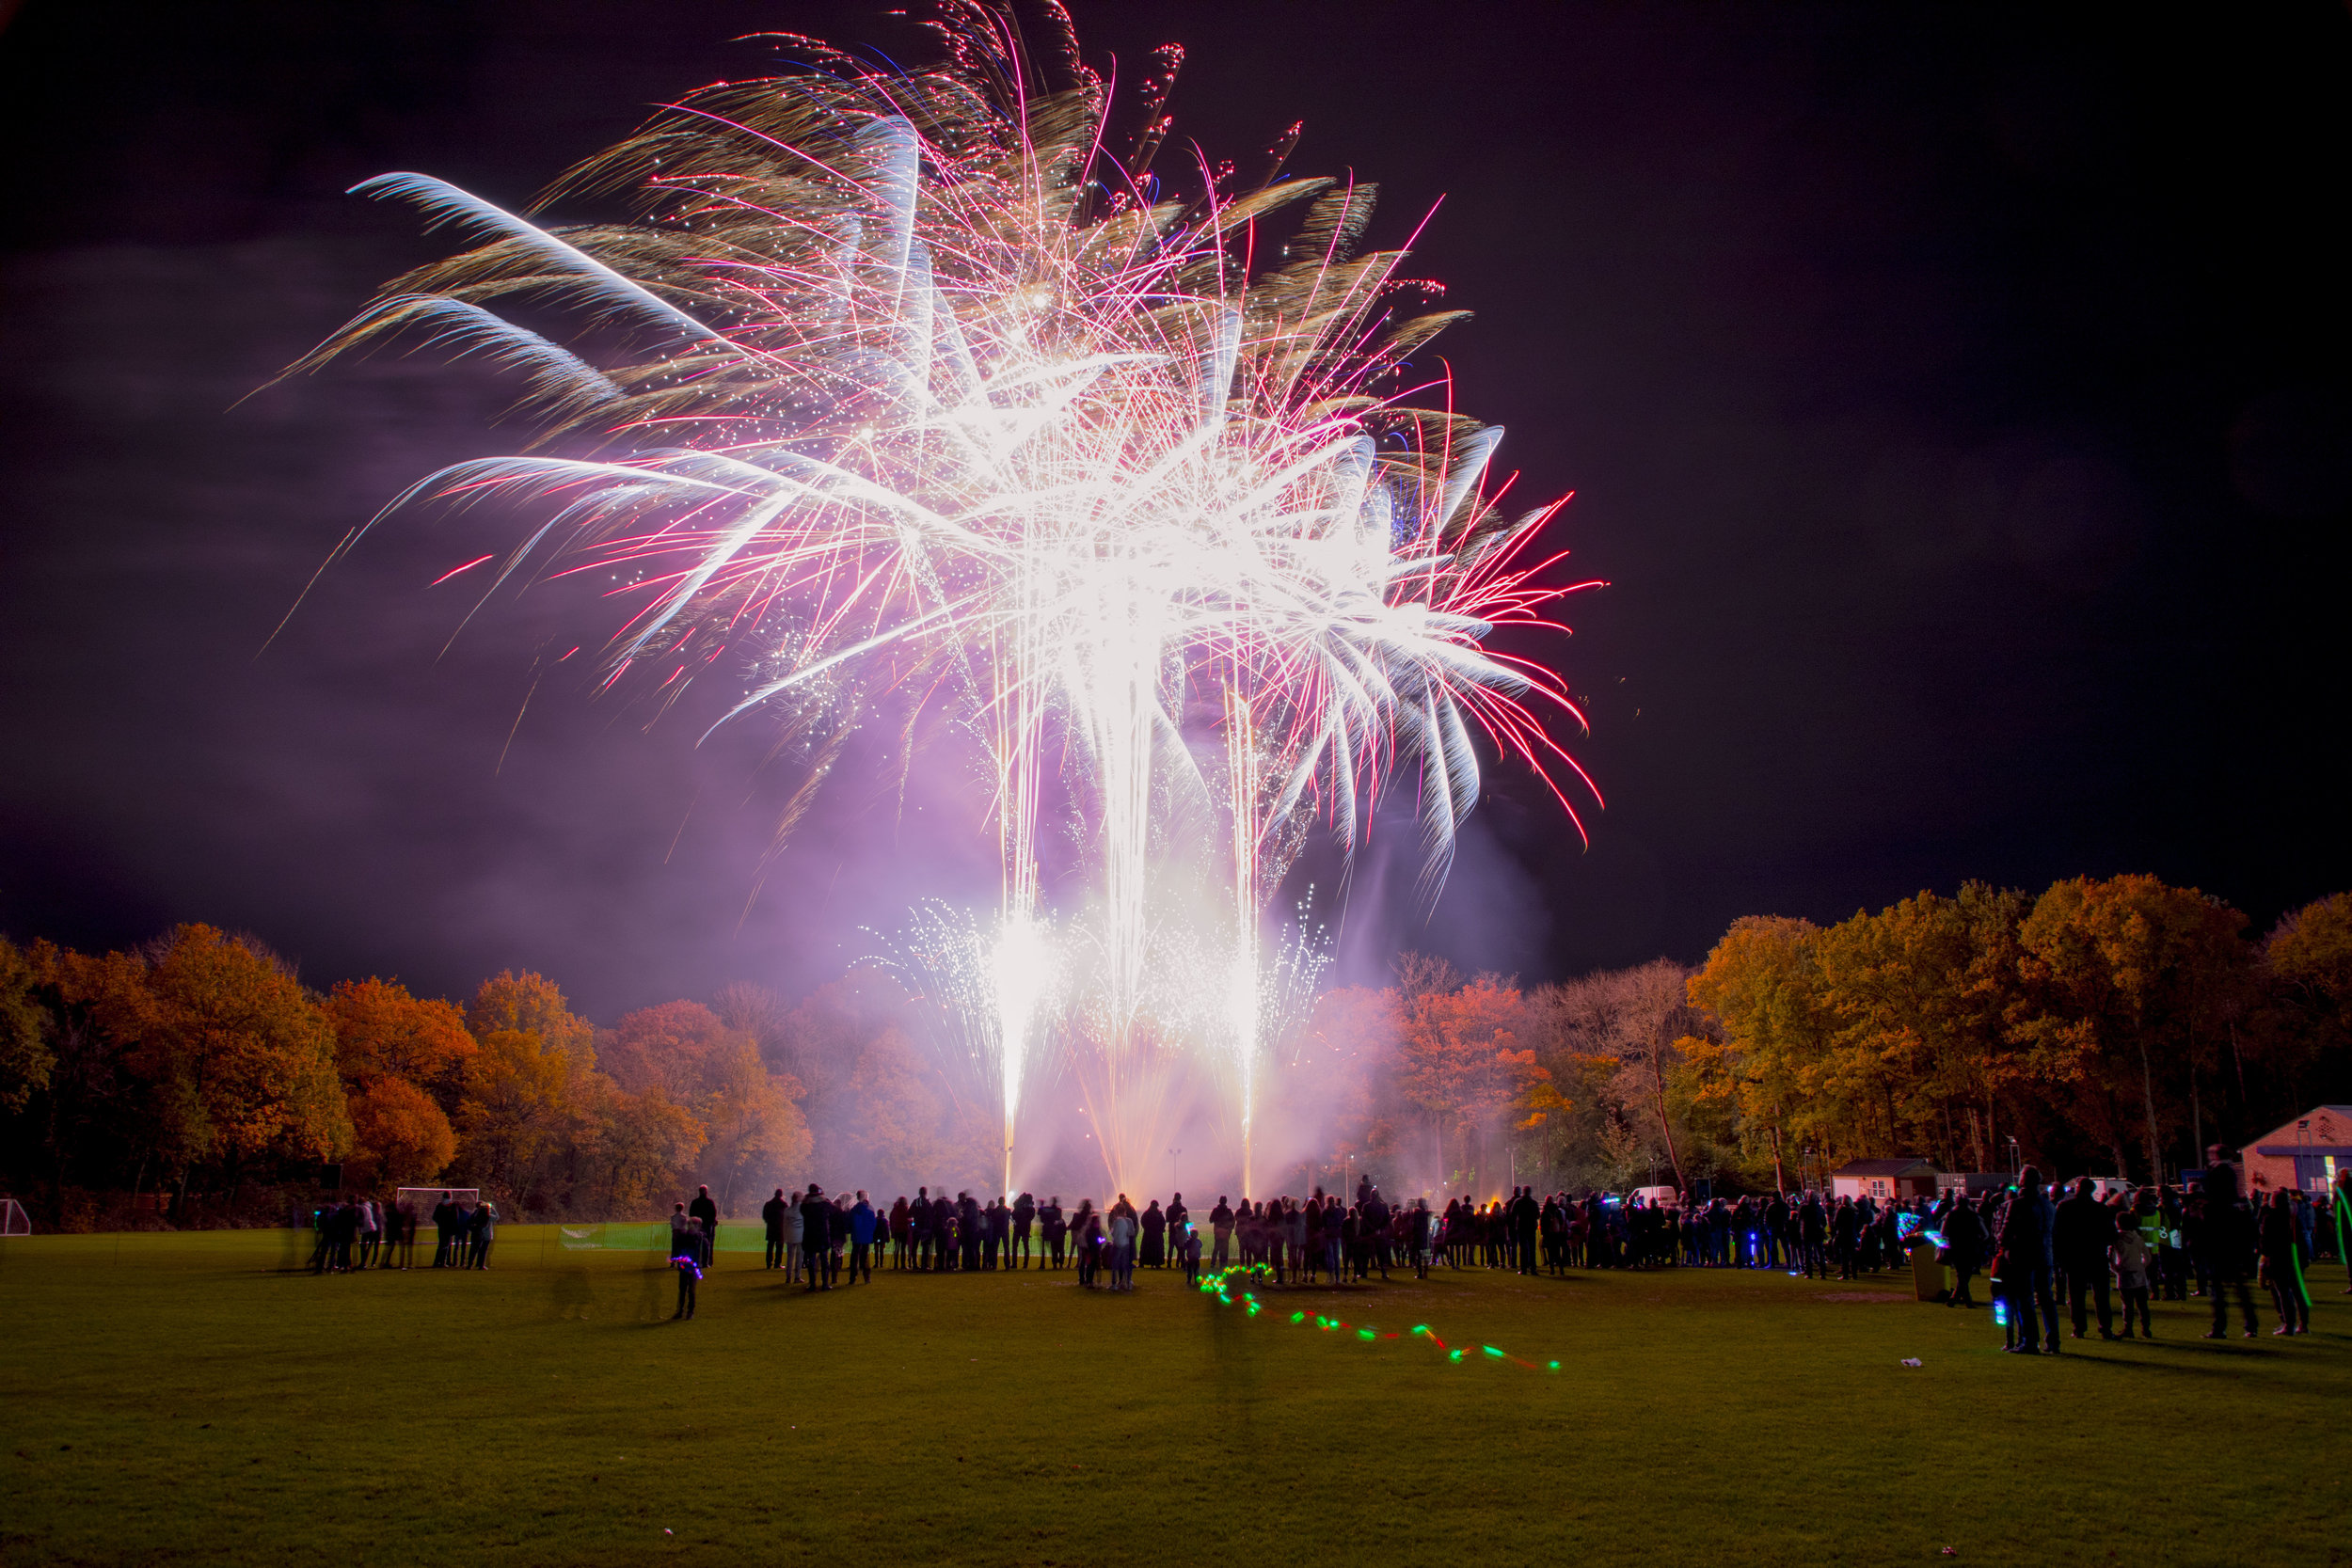 A typical school firework display by Star Fireworks